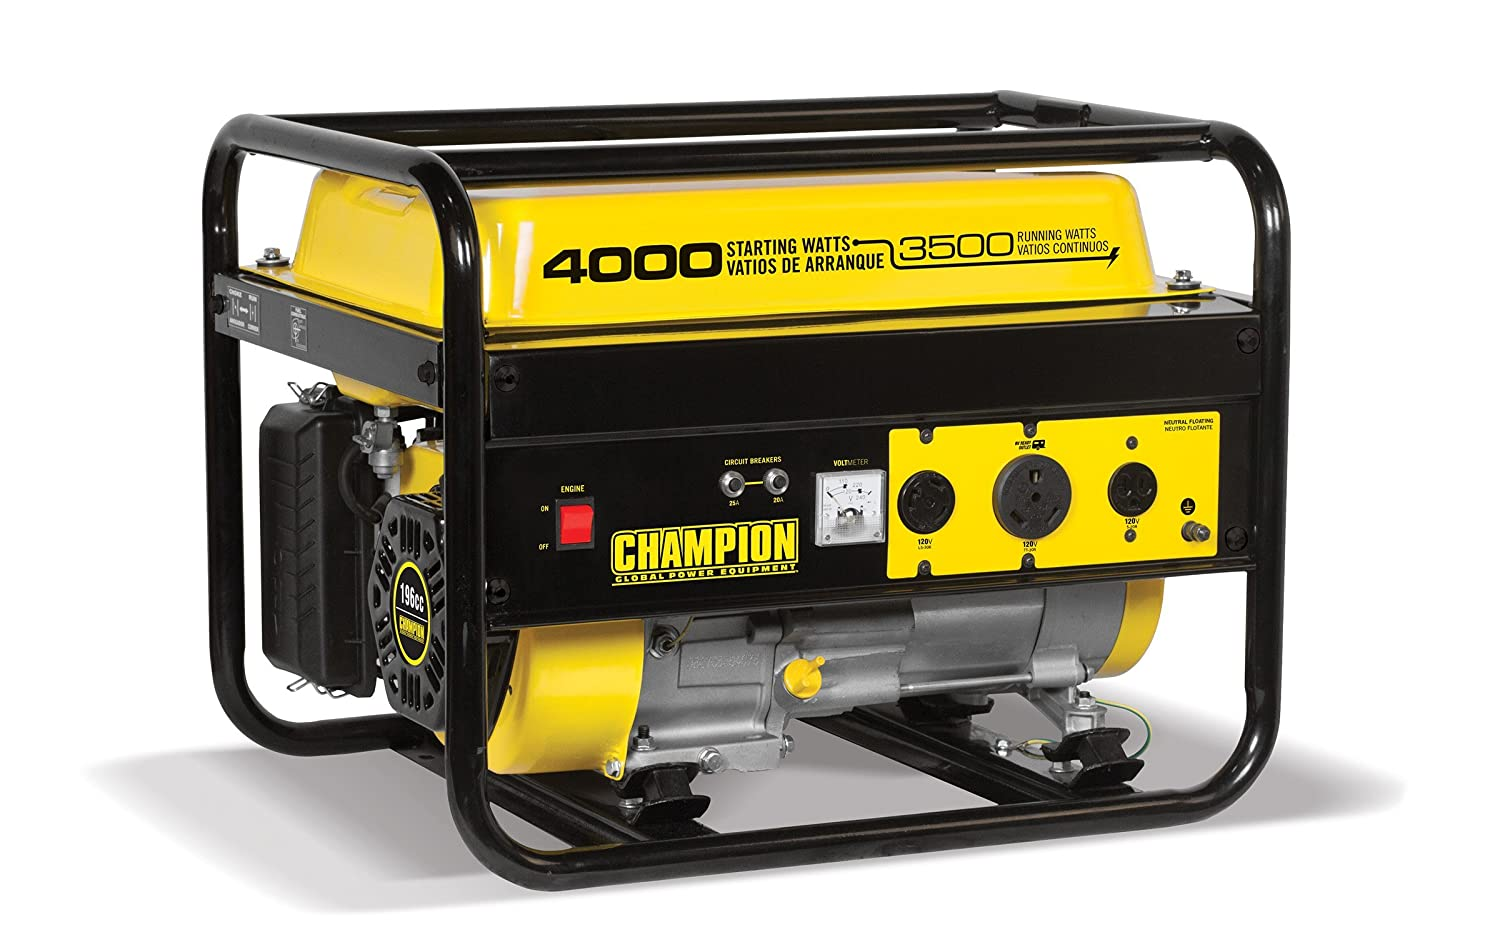 5. Champion 3500-Watt RV Ready Portable Generator